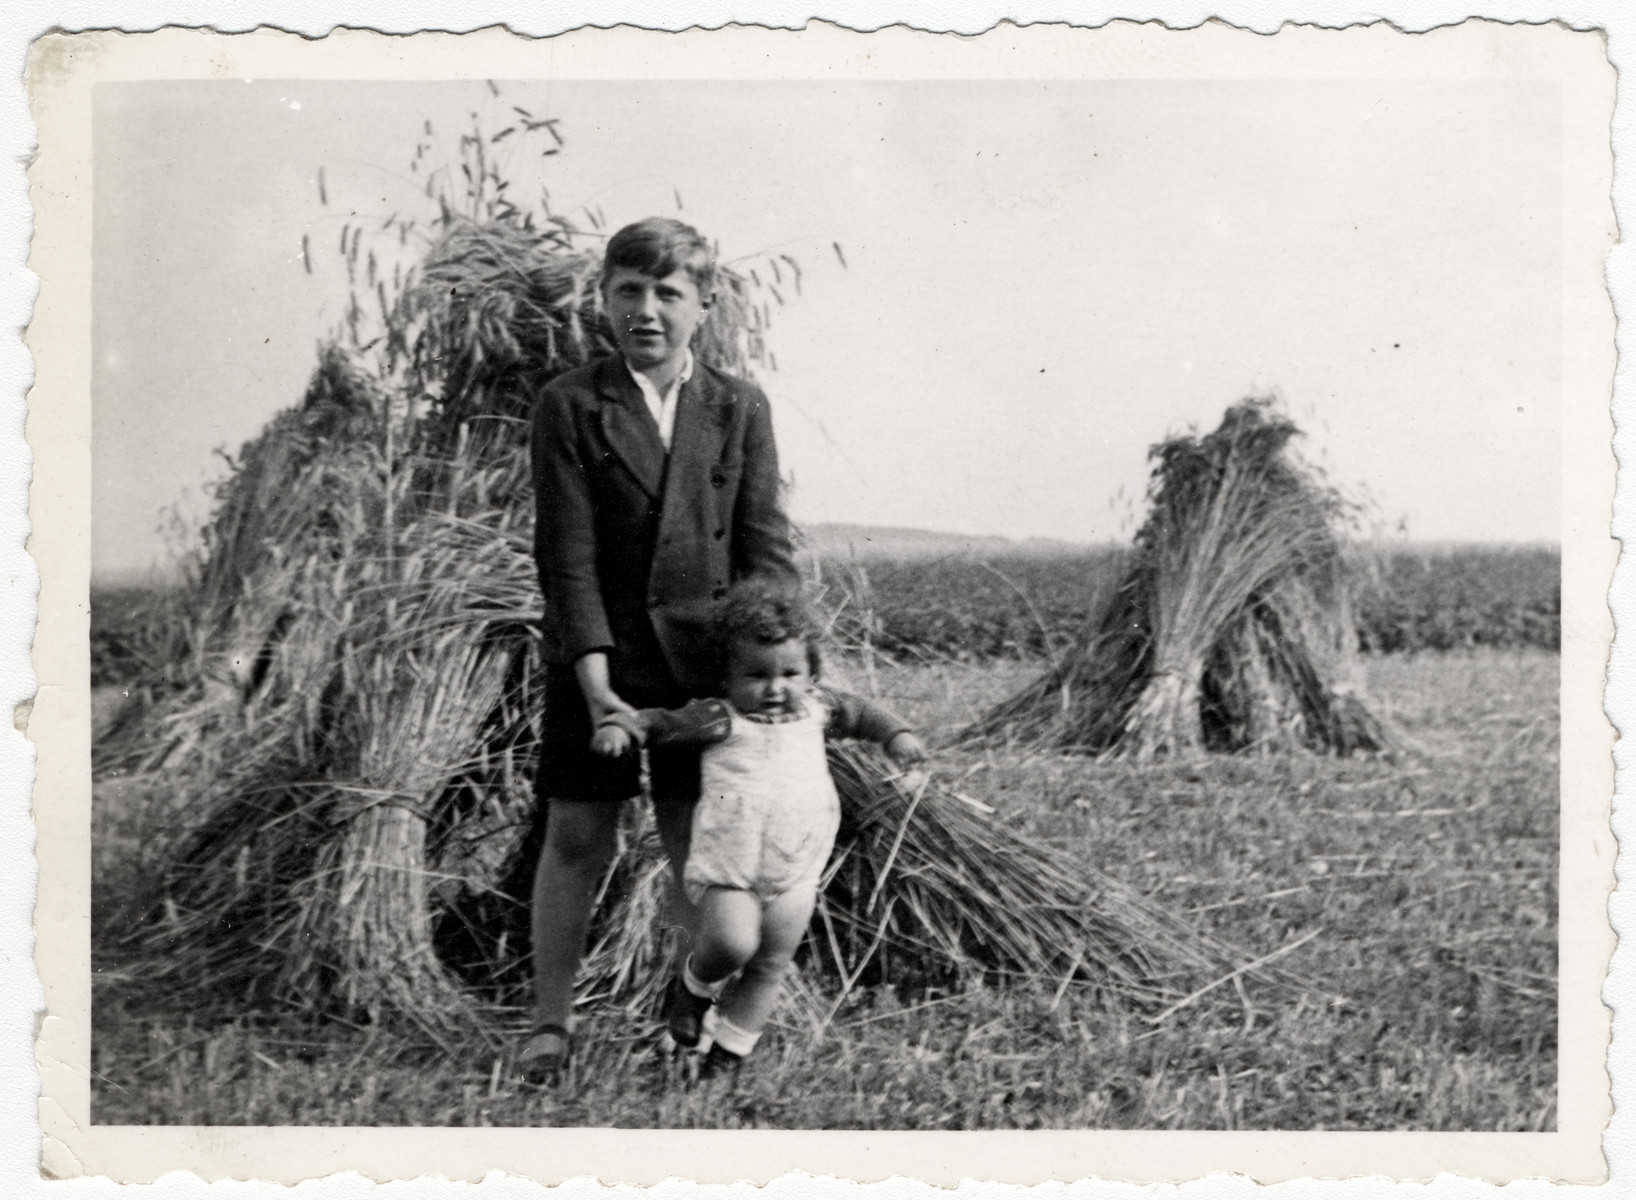 Abraham Malach poses with his baby cousin Abraham Reichman in front of a haystack near the Amberg displaced persons' camp.